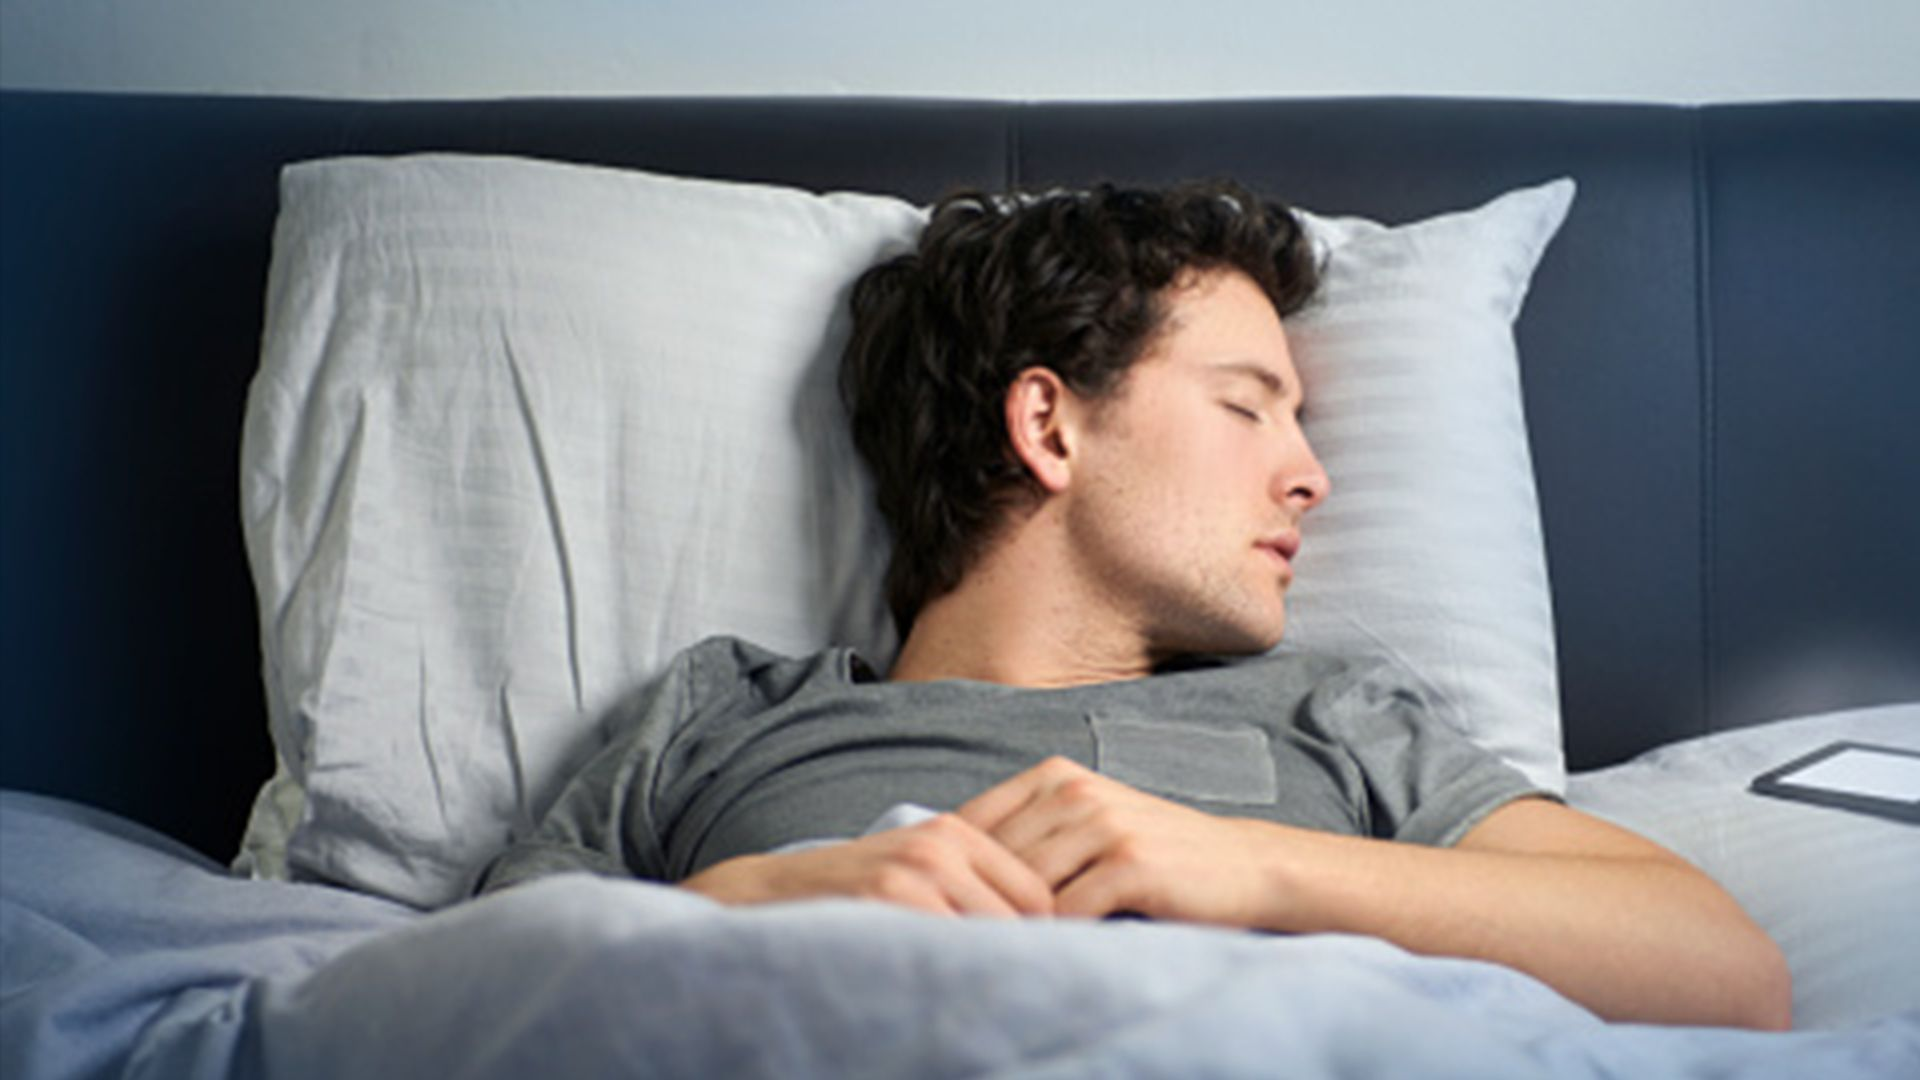 Researcher finds way to calm fears during sleep